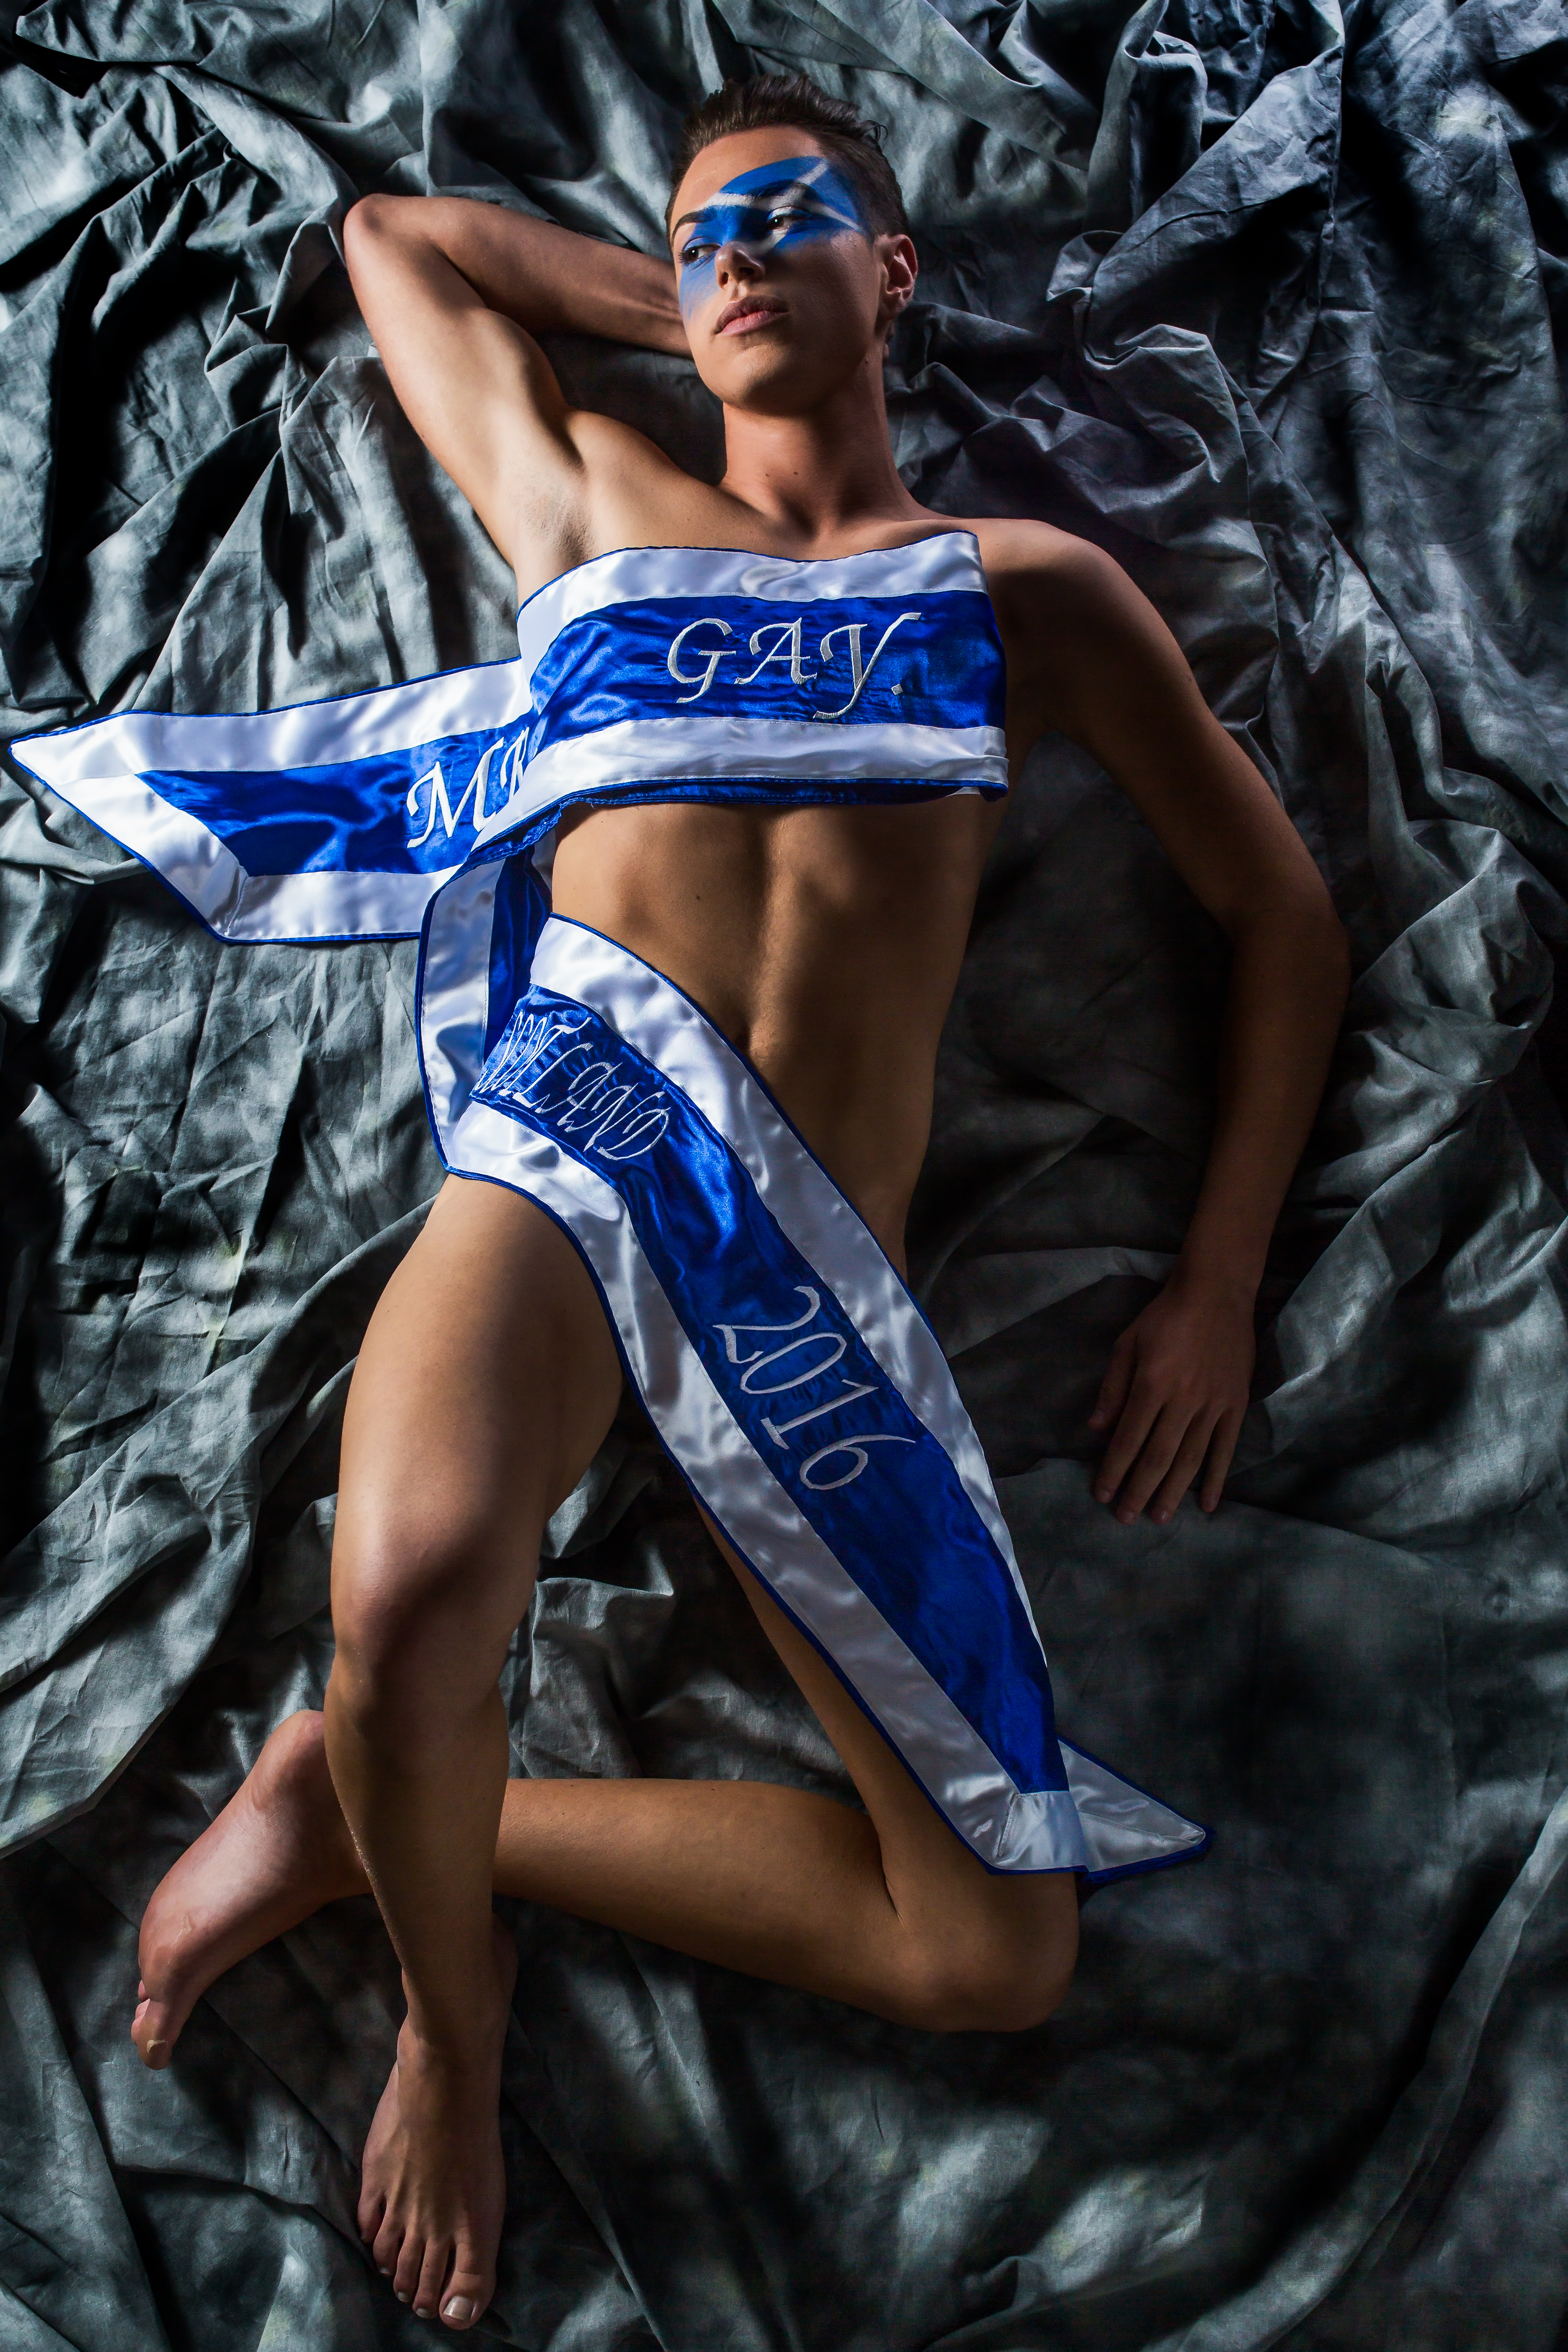 Jamie Love Mr Gay Scotland